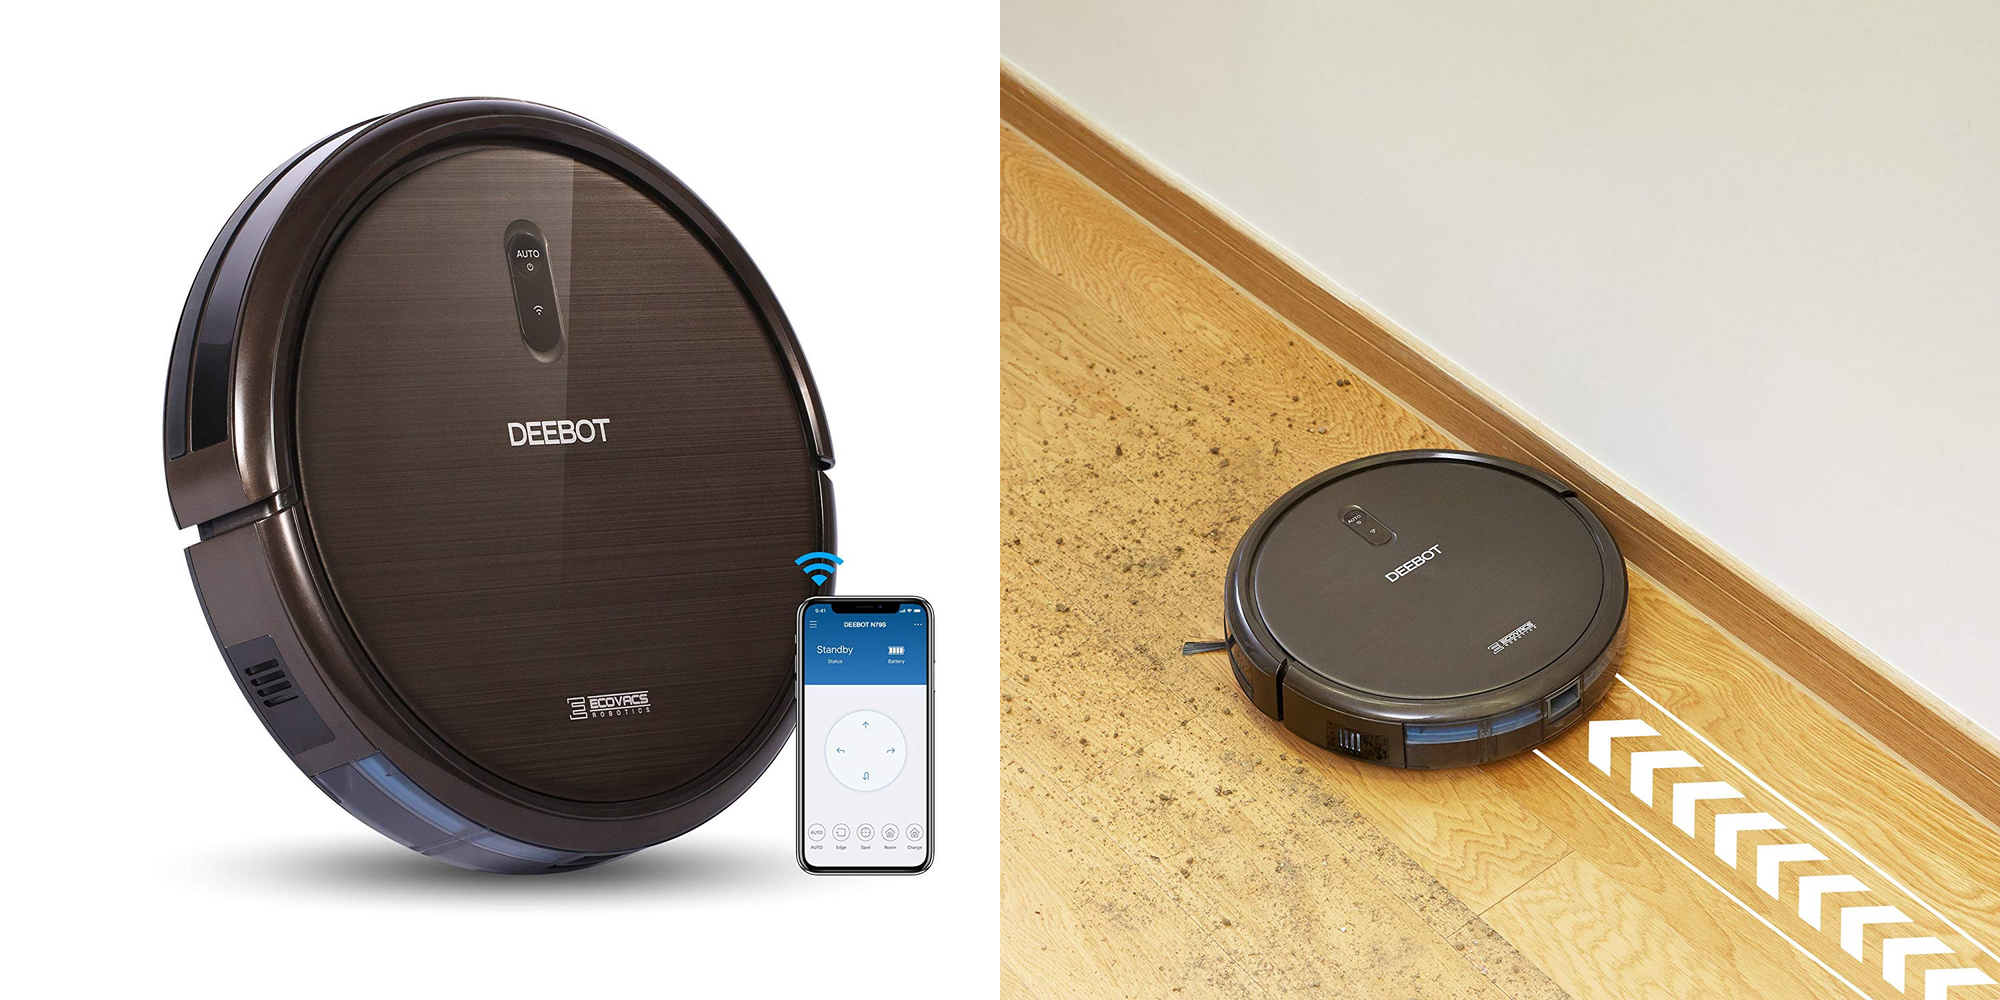 Get the Alexa-enabled Ecovacs DEEBOT N79S Robotic Vacuum for $160 (Reg. $200) + more